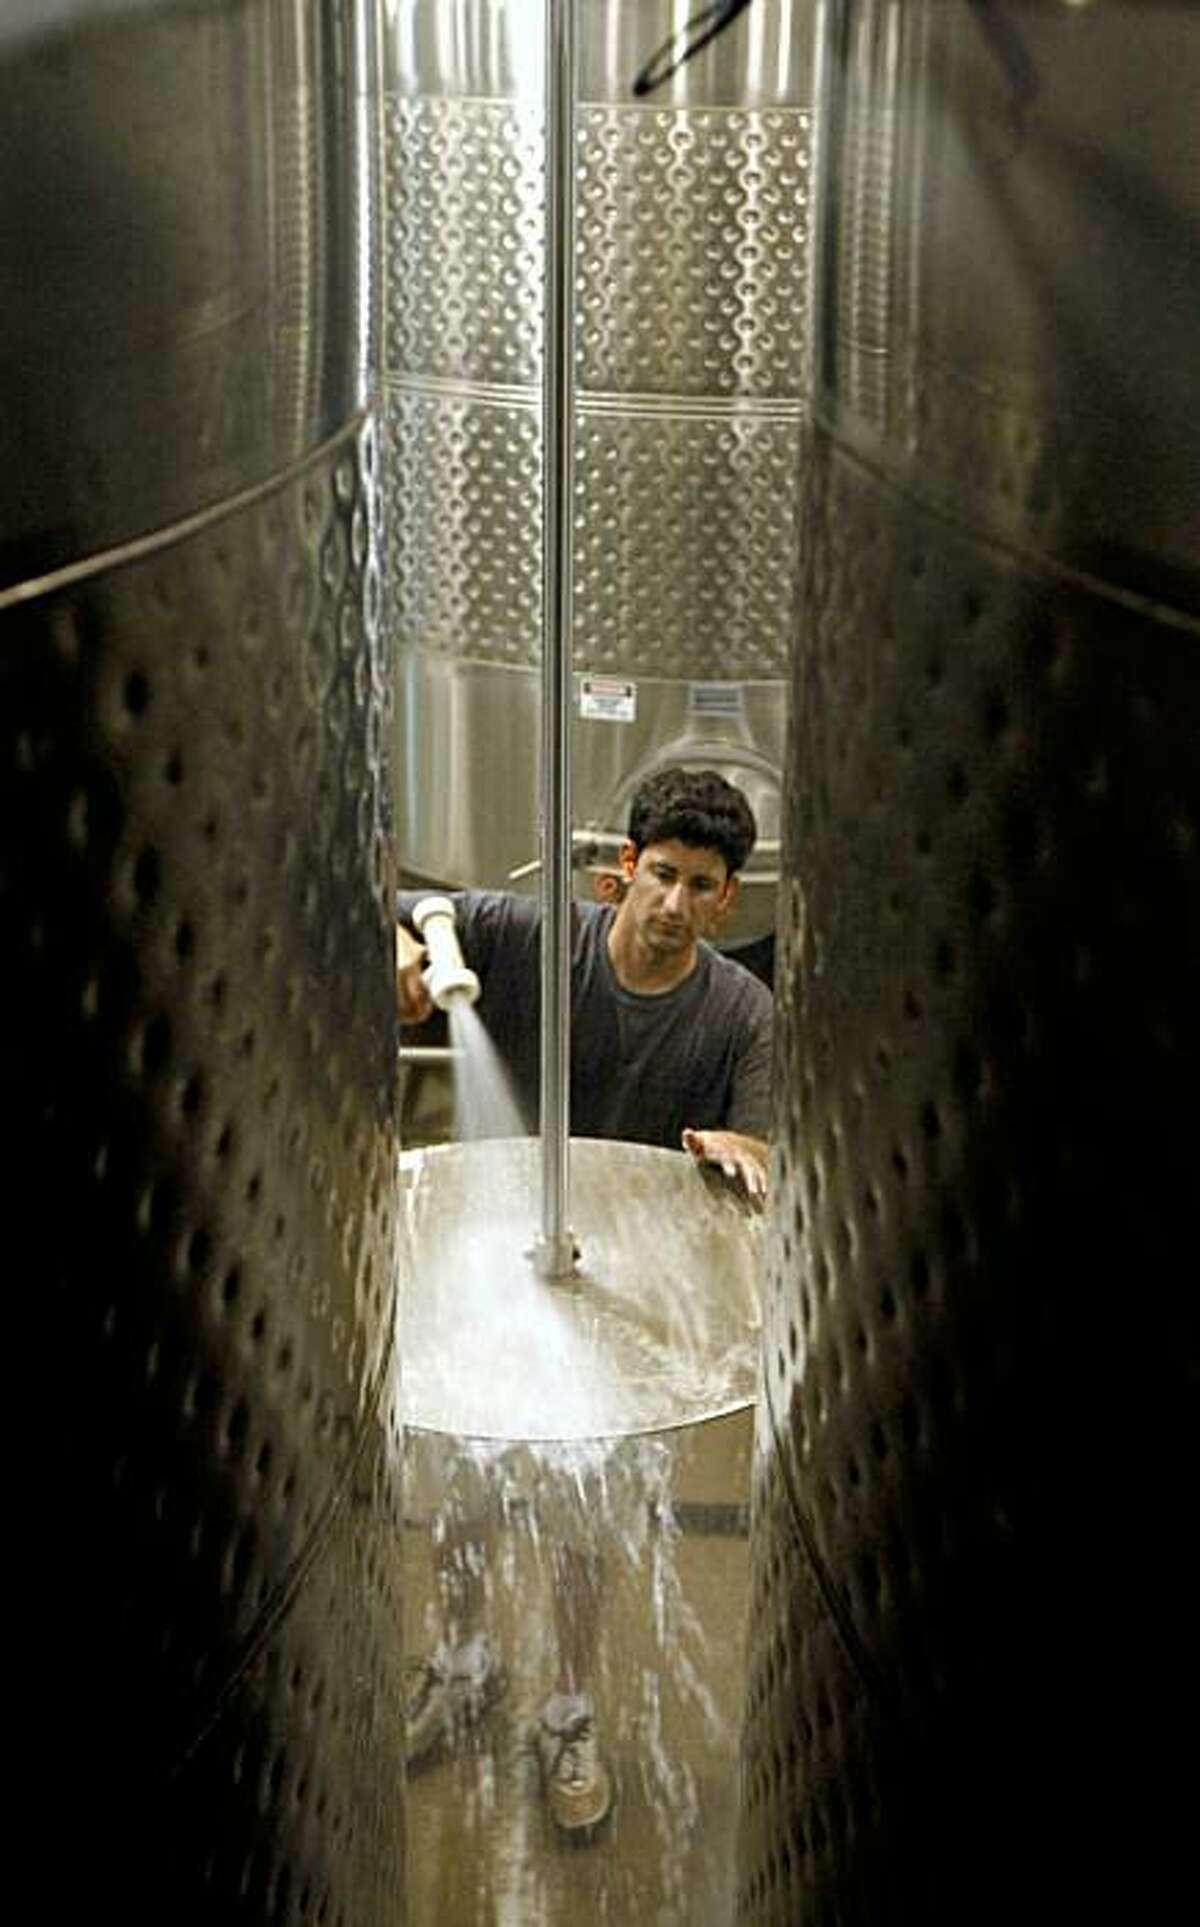 Daniel Seddiqui cleans a powered paddle used to punch down the grapes in large holding tanks before the wine is transferred to French oak barrels Tuesday Sept 22, 2009. Seddiqui found himself unemployed after graduating from USC with little chance of finding a job in the down ecomamy he elected to visit 50 Sates and experience 50 different jobs in as many weeks. He concluded his travels working at Domaine Carneros in Napa helping bring in the wine harvest. Sept 22, 2009